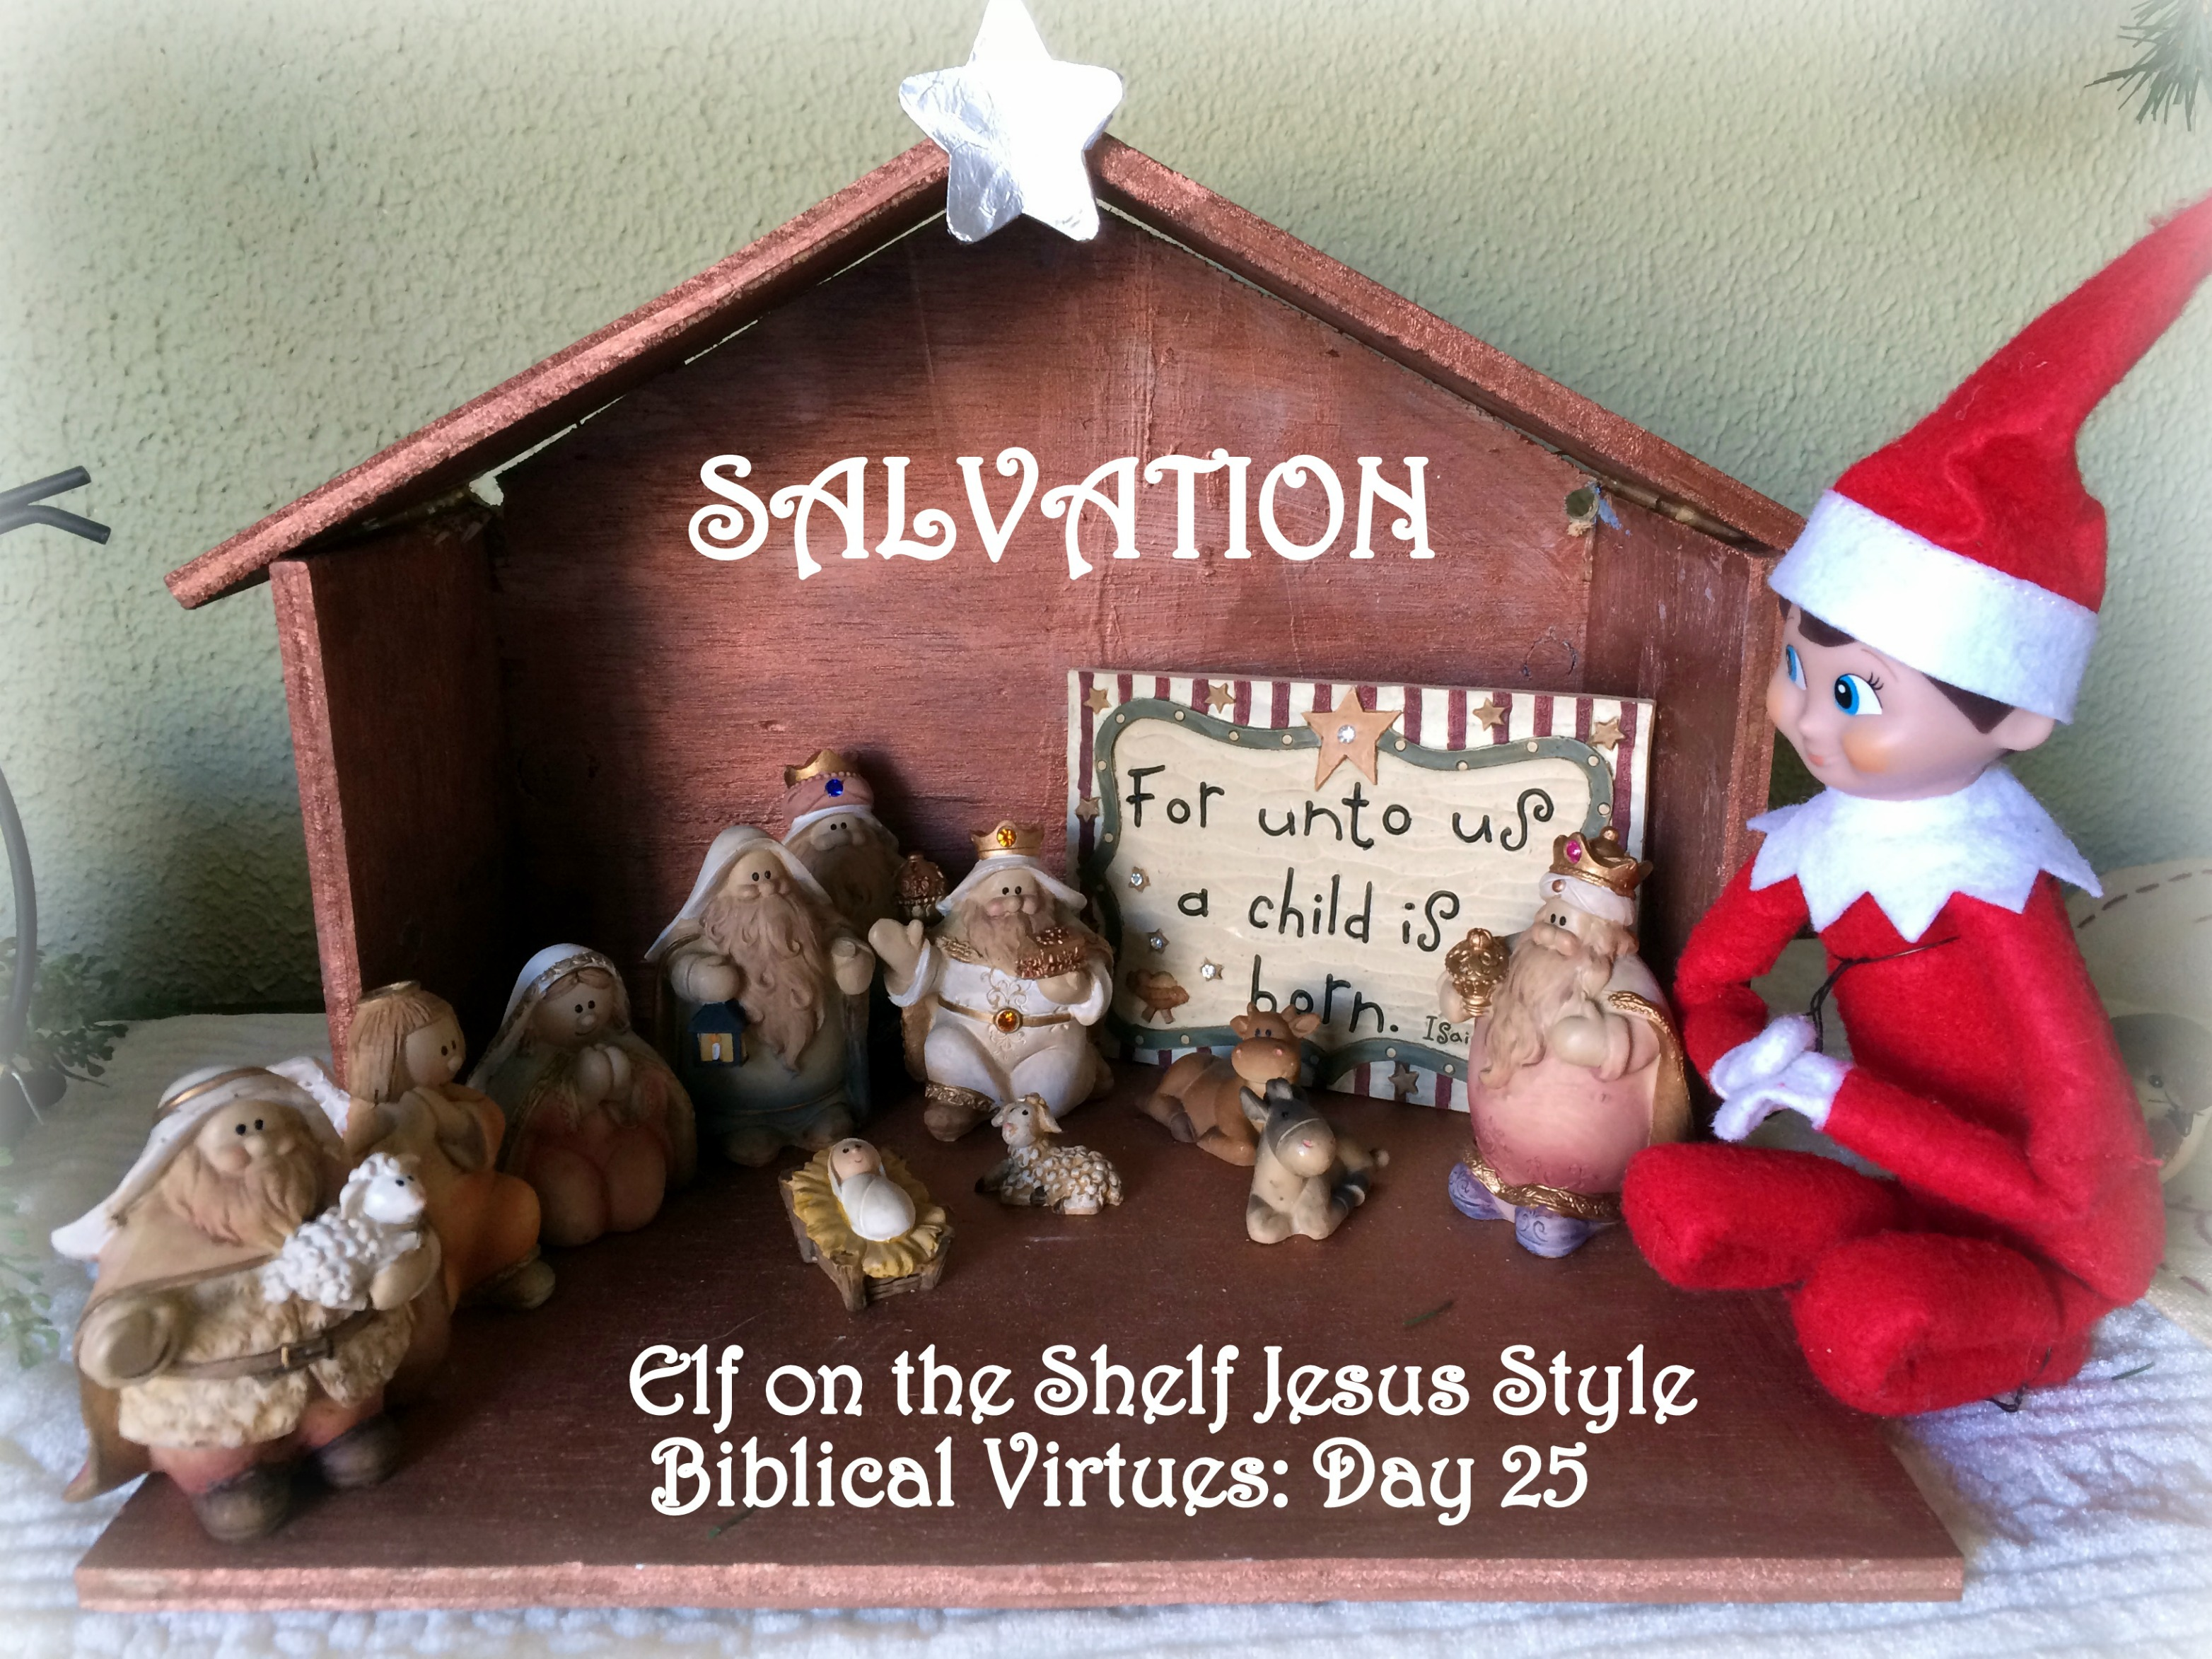 Elf On The Shelf Jesus Style Biblical Virtues Salvation